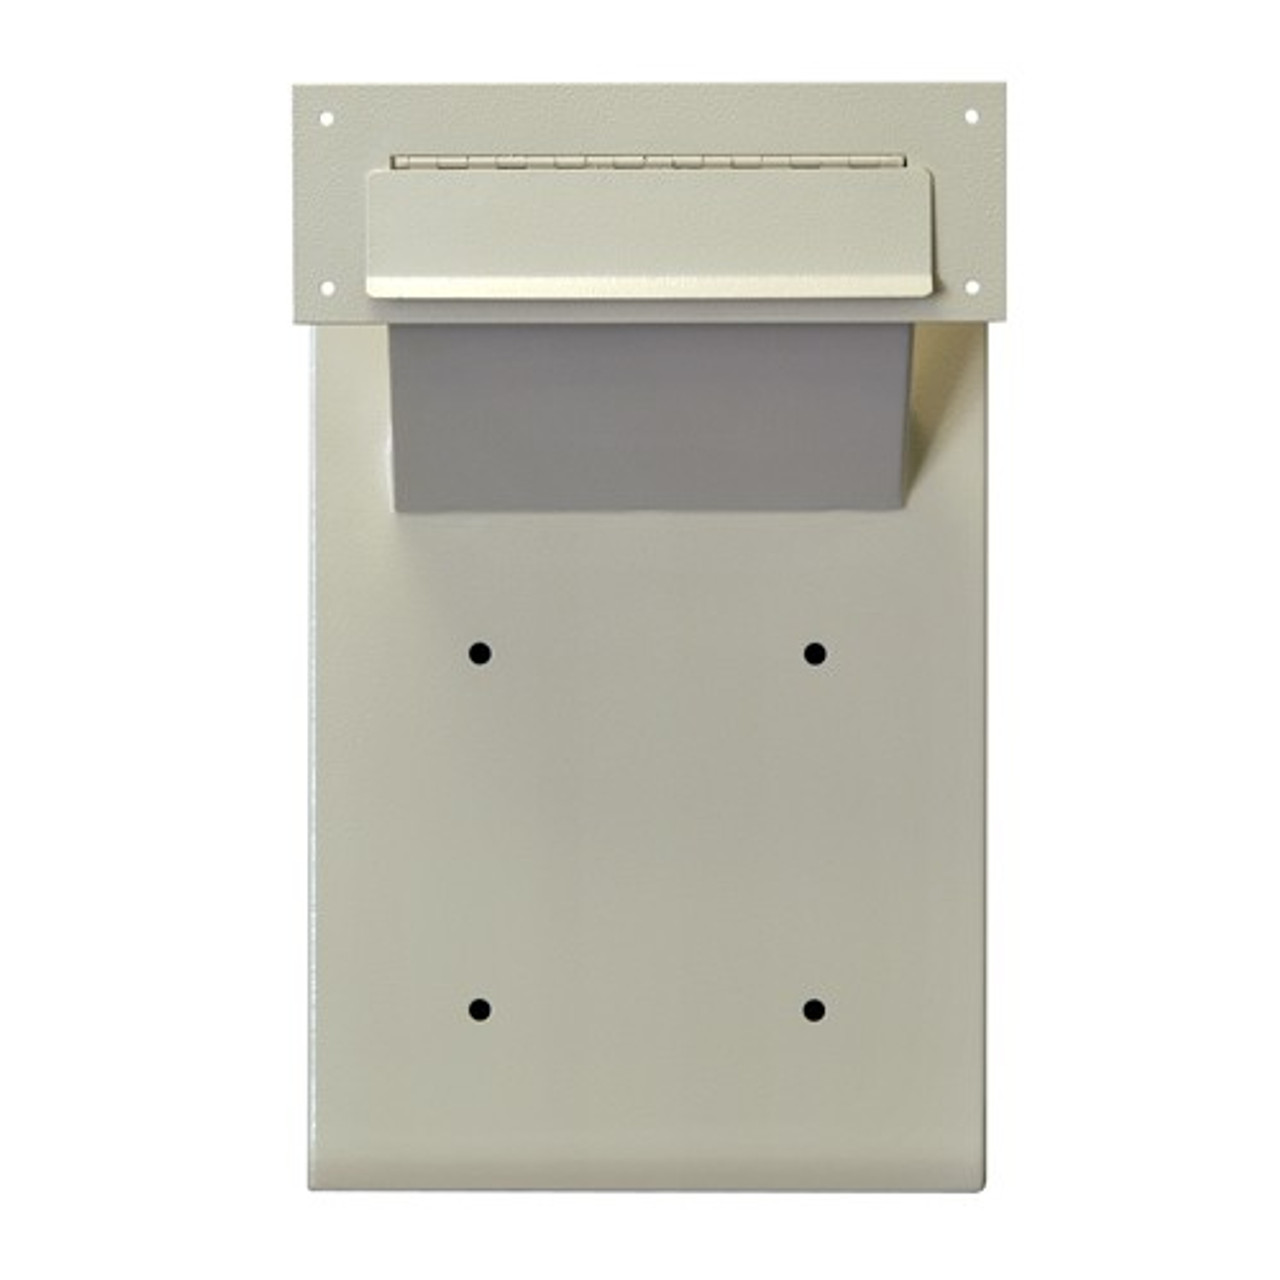 Adjustable Through the Wall Locking Drop Box  front view